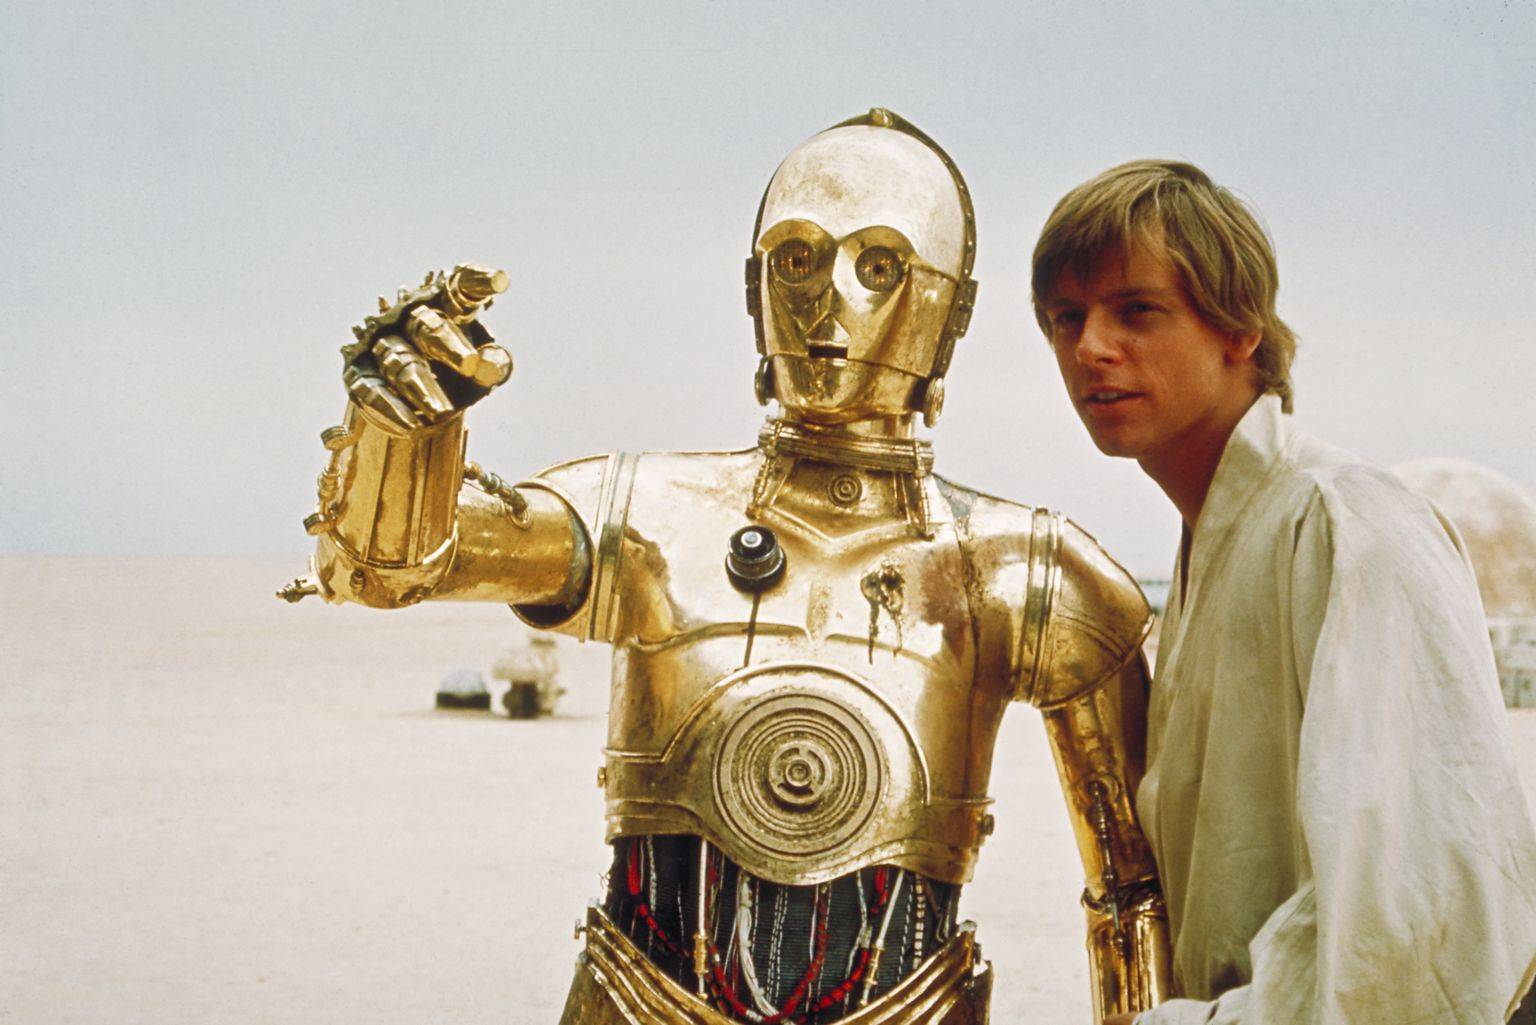 an analysis of the character of c 3po in star wars a movie by george lucas